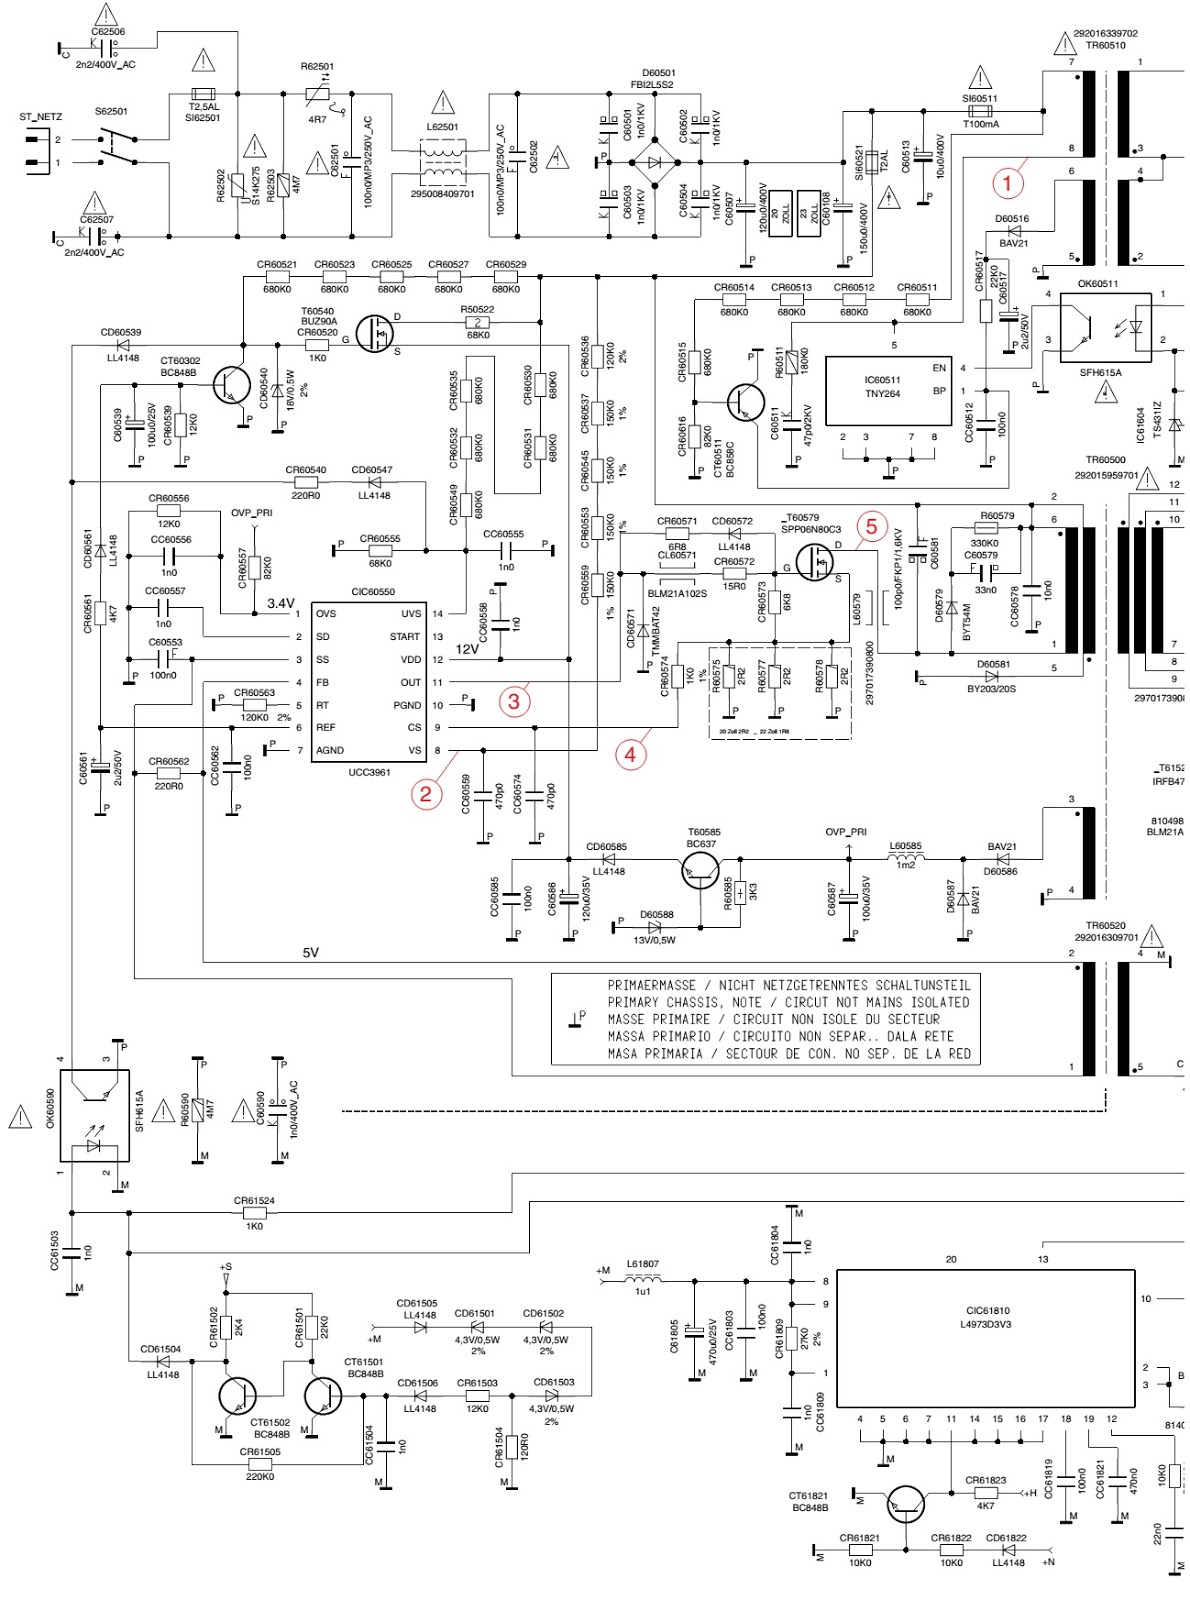 electro help  grundig tharus lcd tv - how to enter service mode - smps schematic